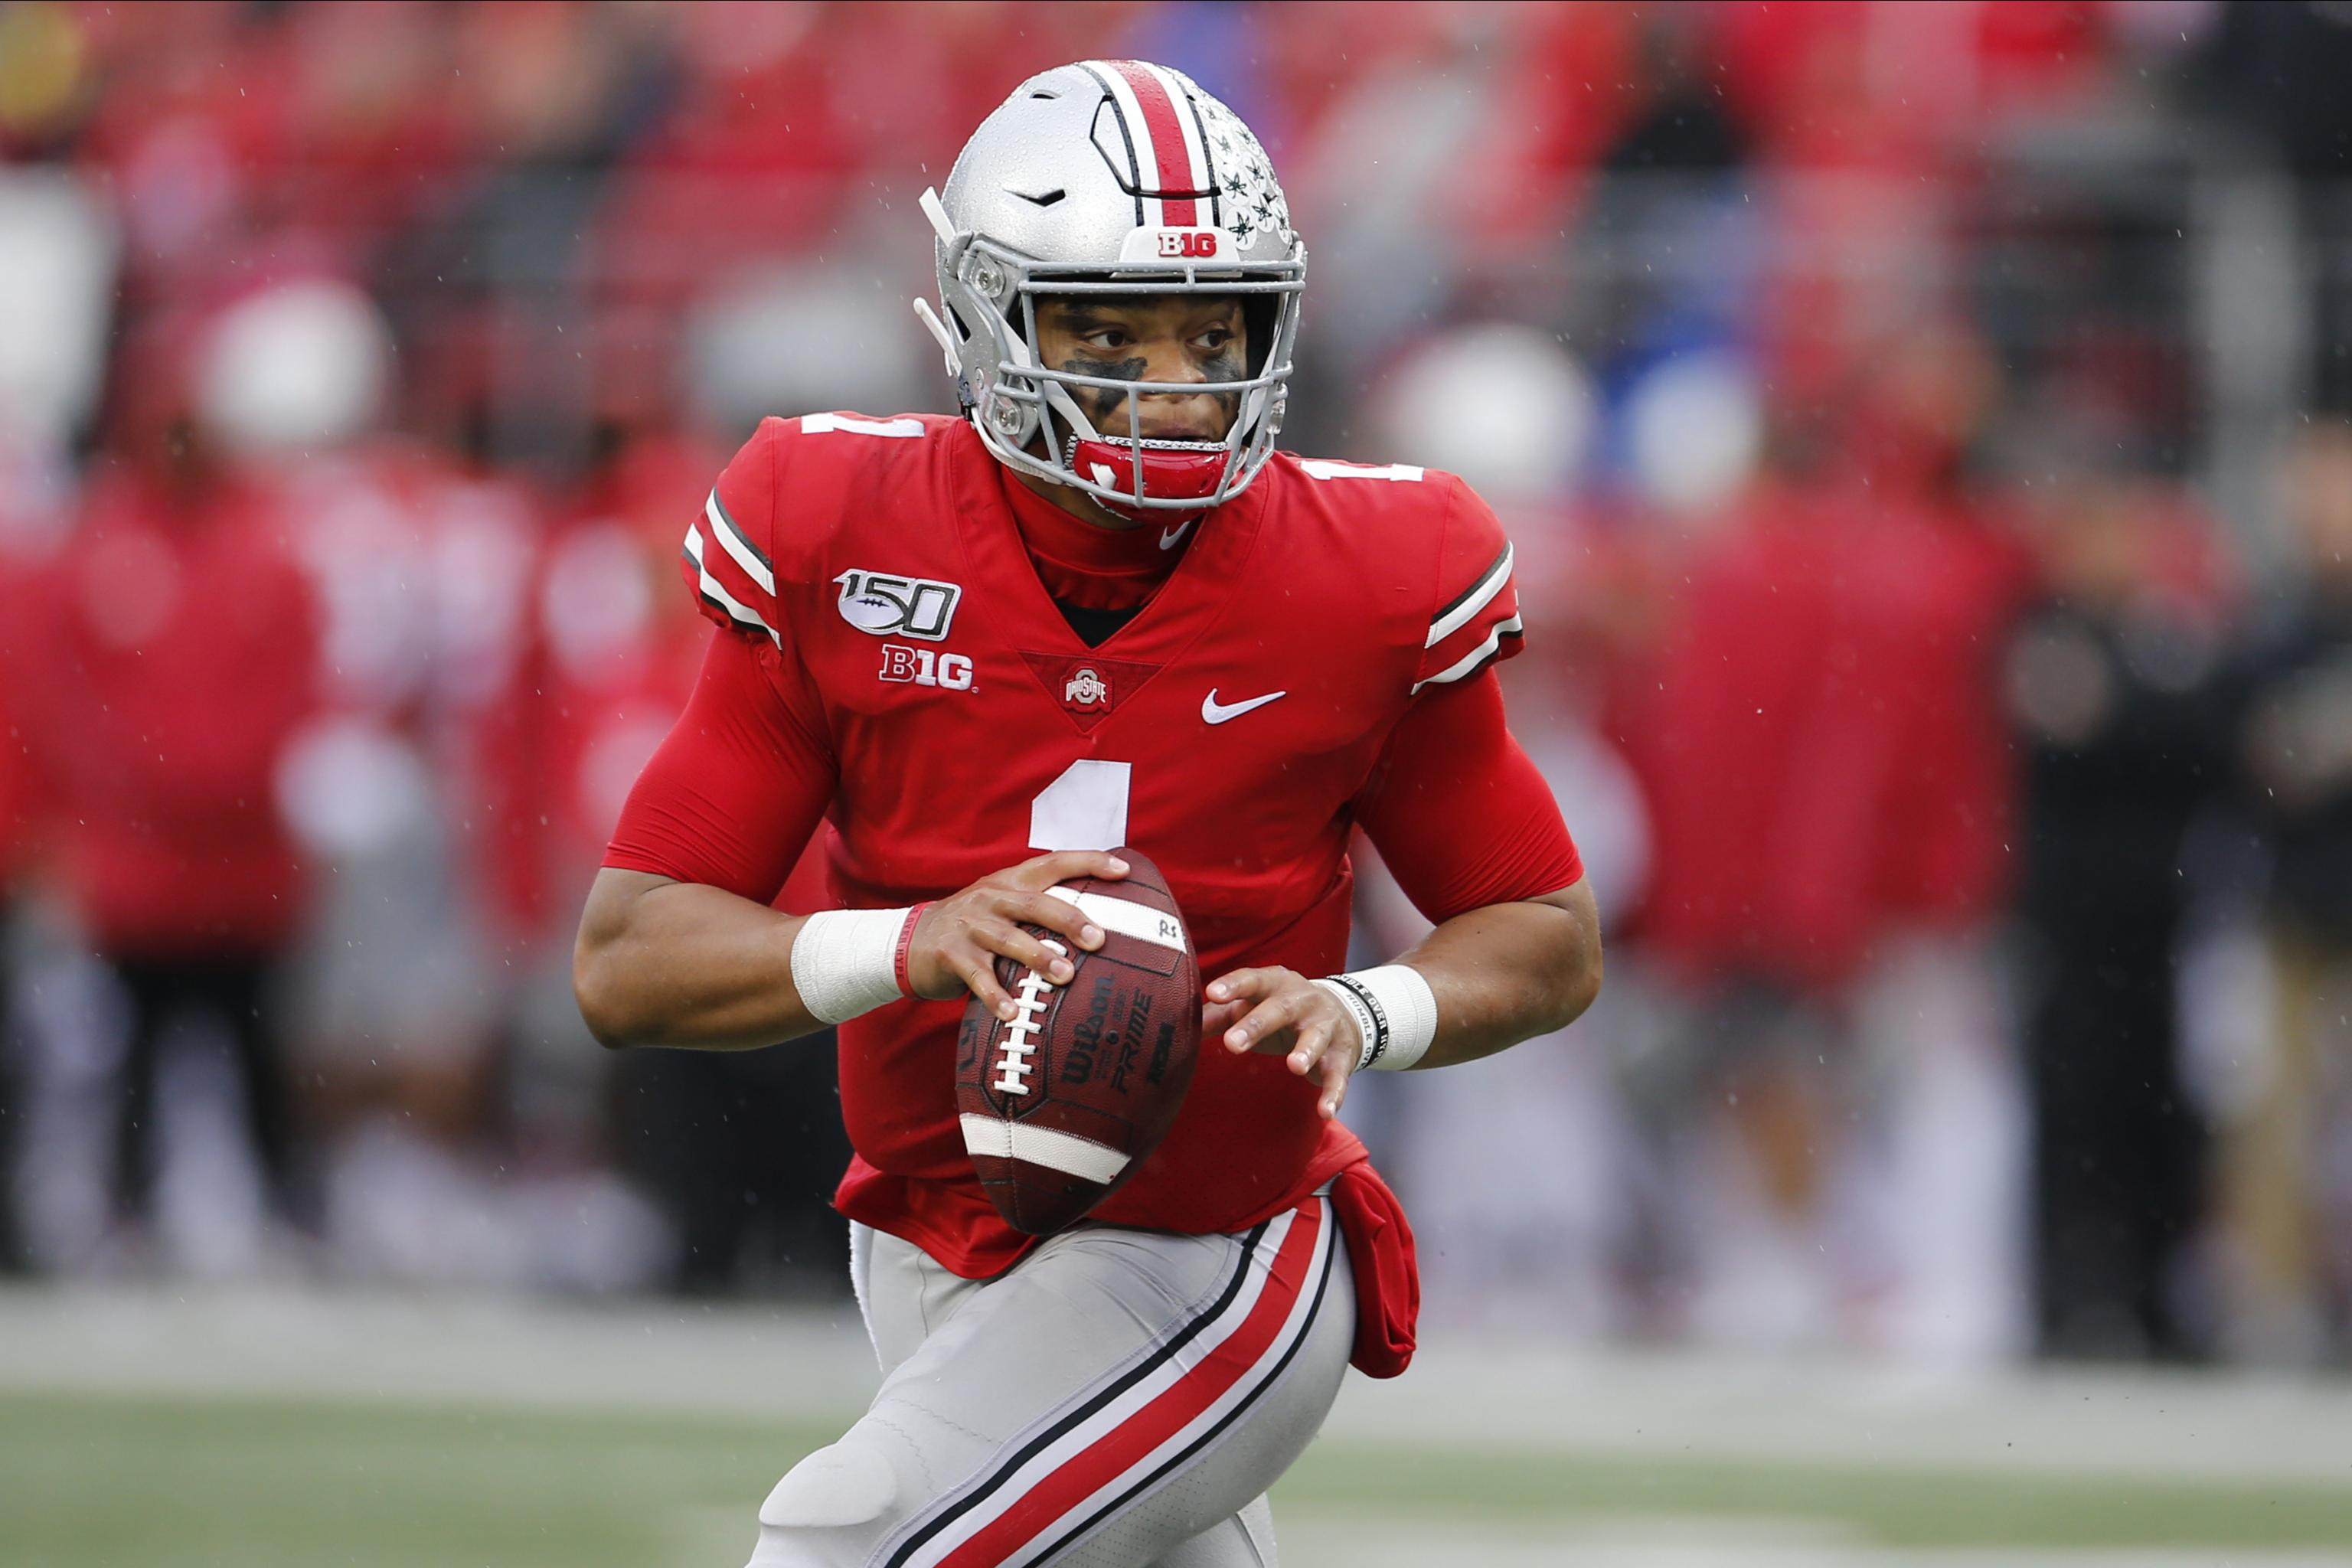 Ohio State QB Justin Fields Says Knee Injury Is at 80-85% Ahead of Clemson  Game | Bleacher Report | Latest News, Videos and Highlights